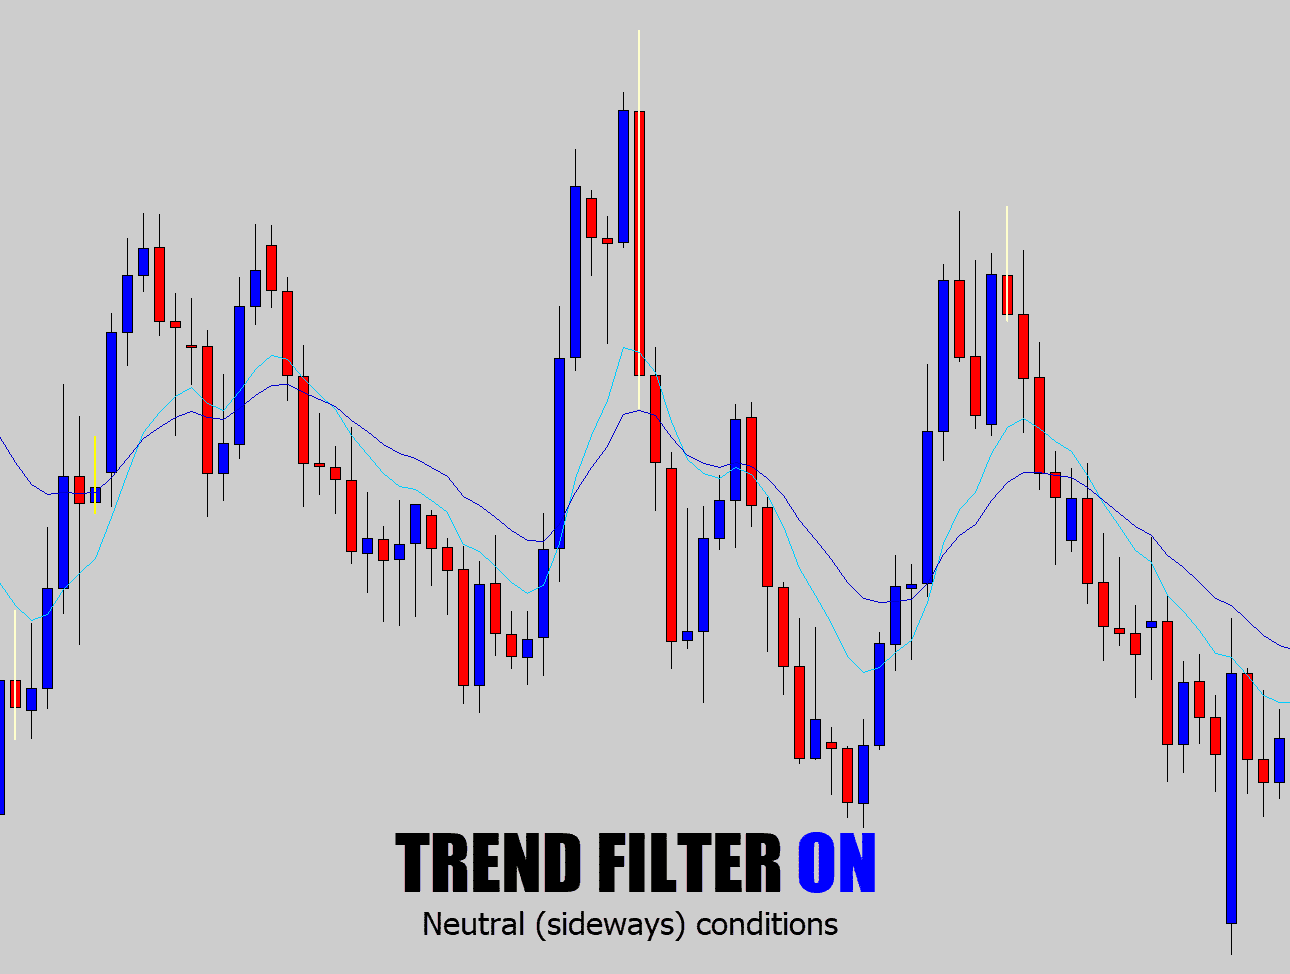 trend filter on sideways markets